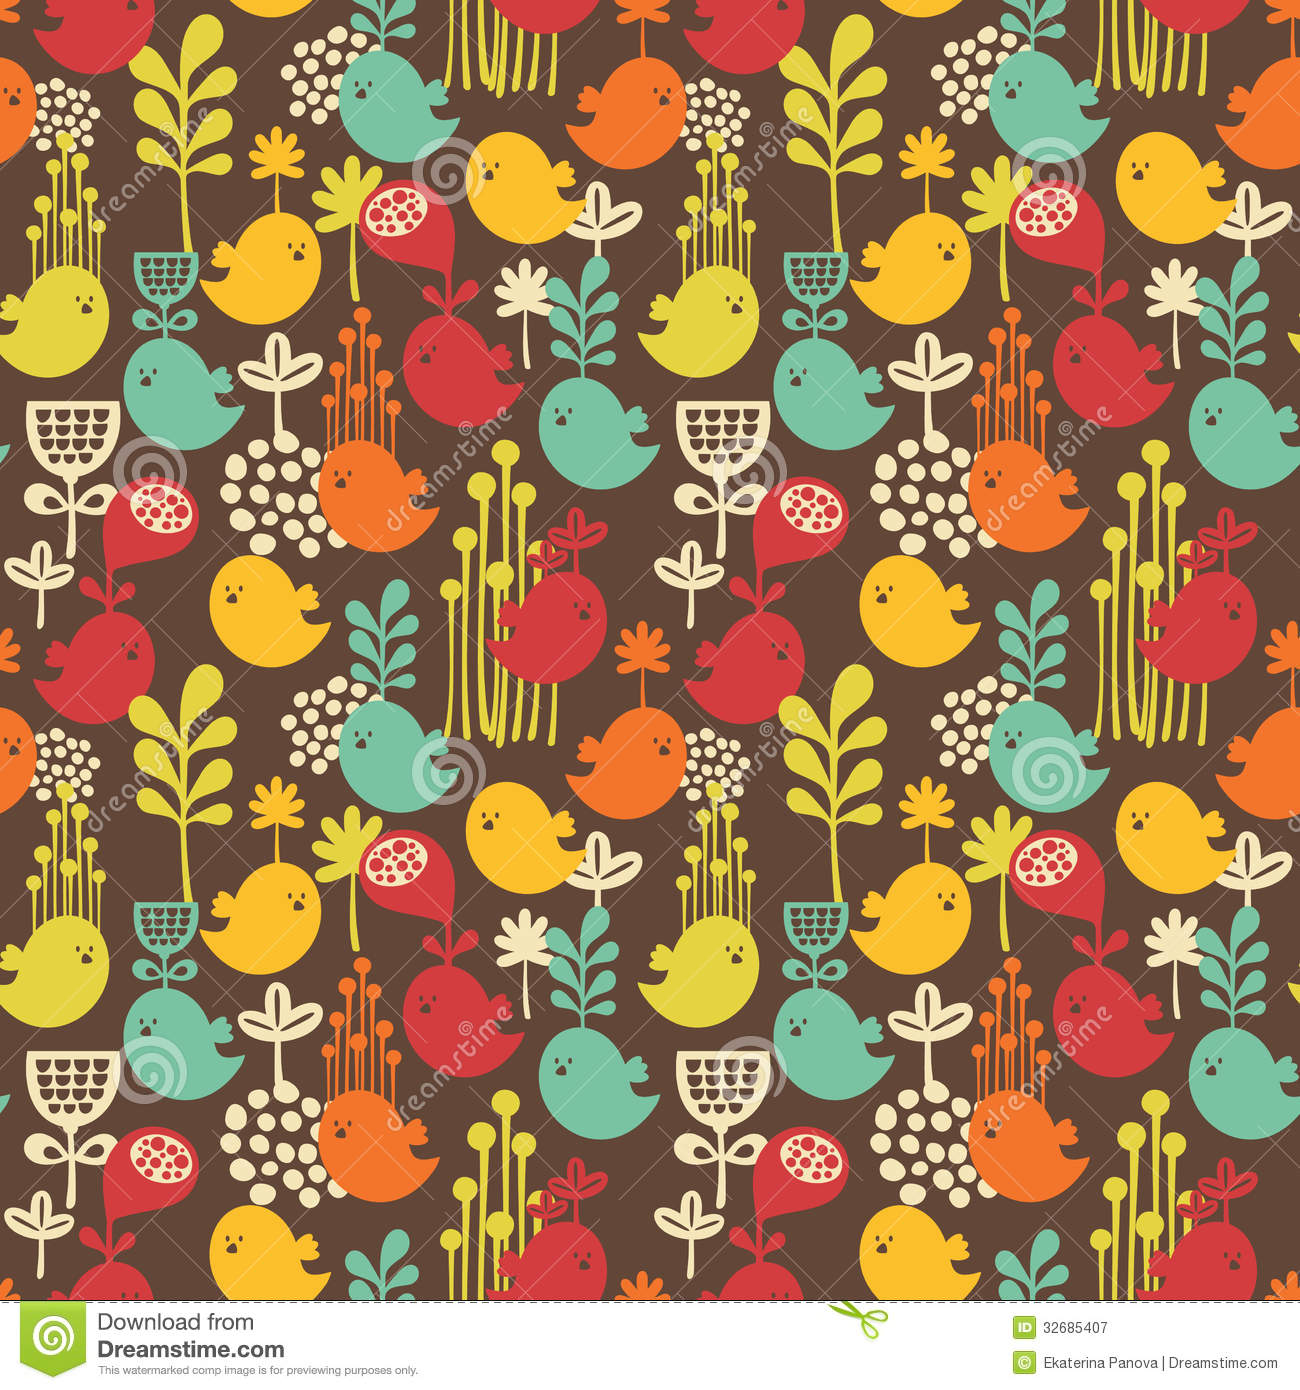 Free Animated Fall Wallpaper Seamless Pattern With Cartoon Birds Stock Vector Image